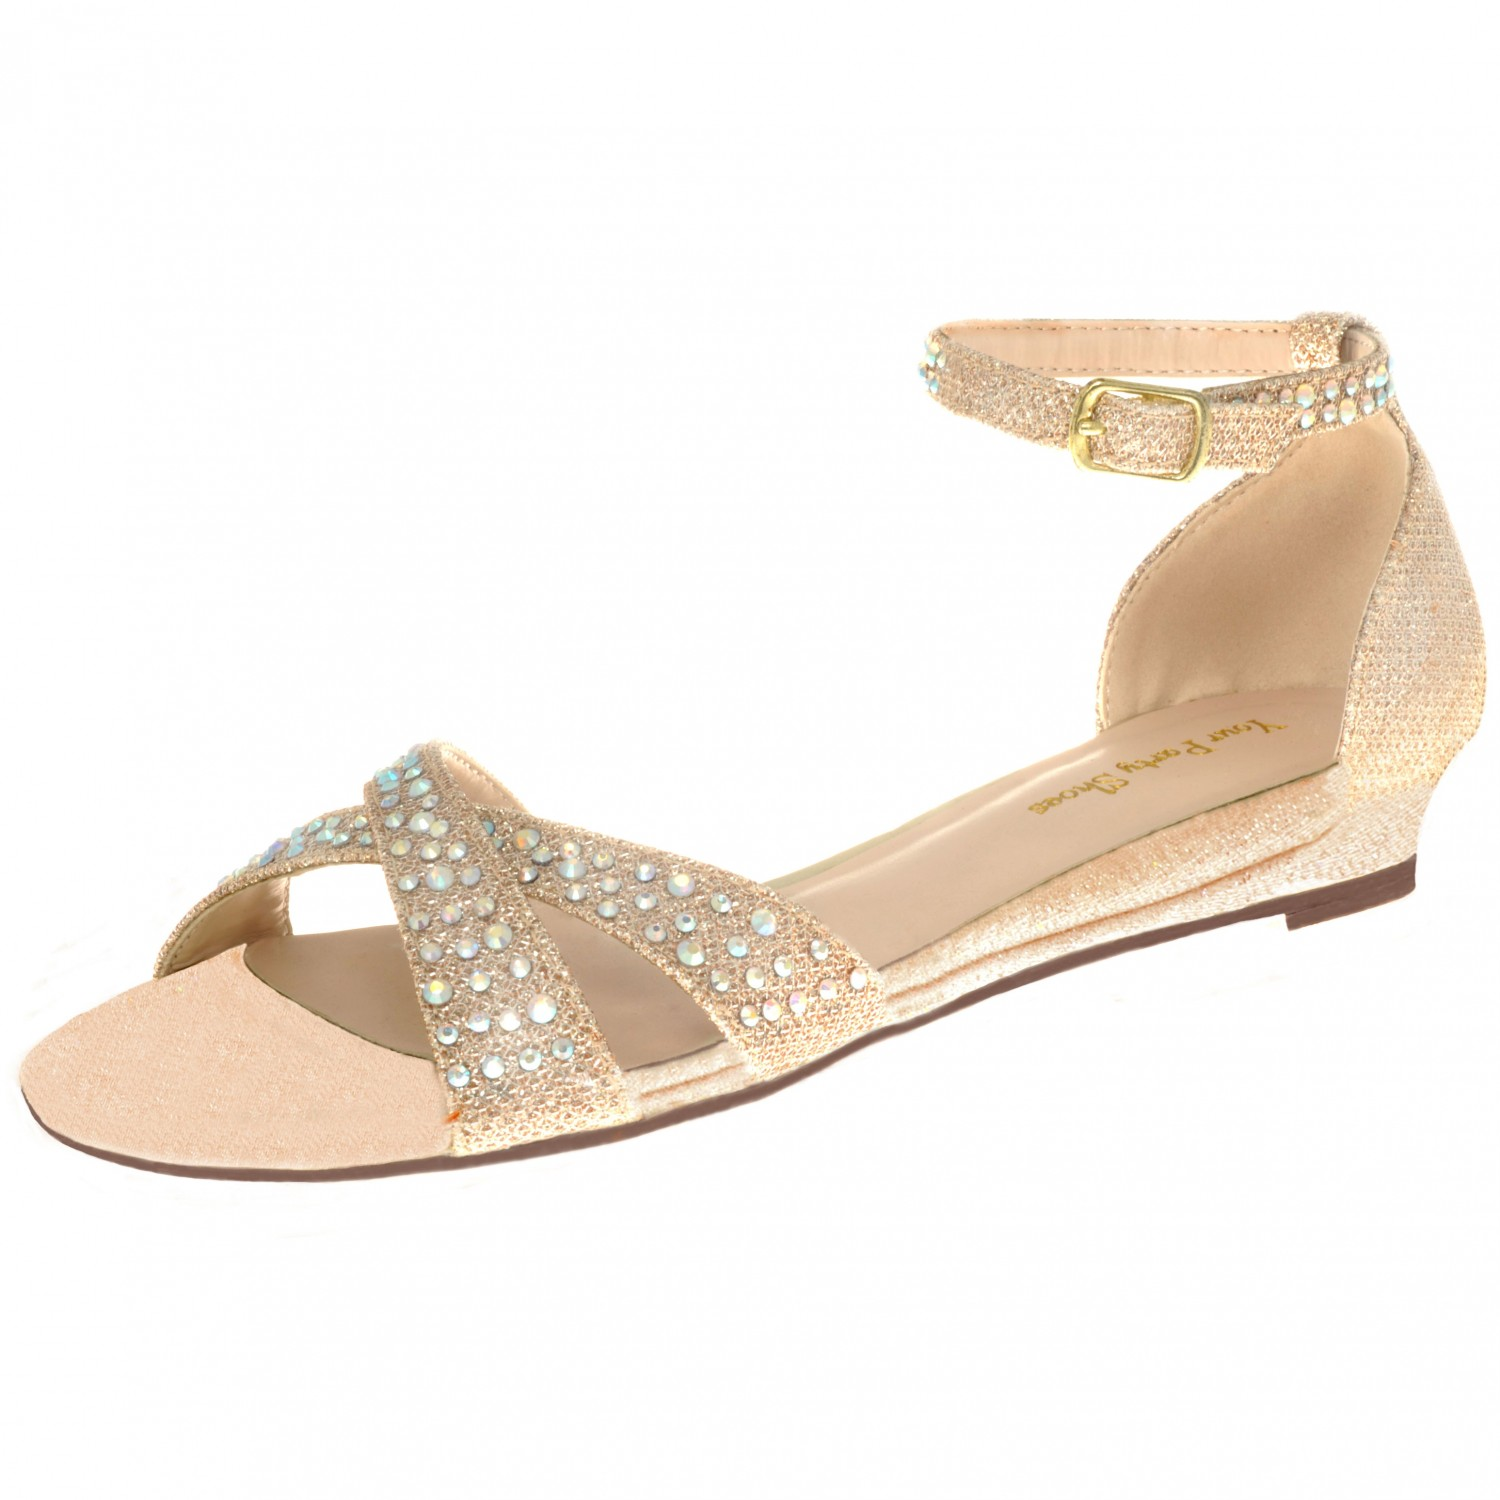 Your Party Shoes Lilly Sparkly Jeweled Flat Sandal